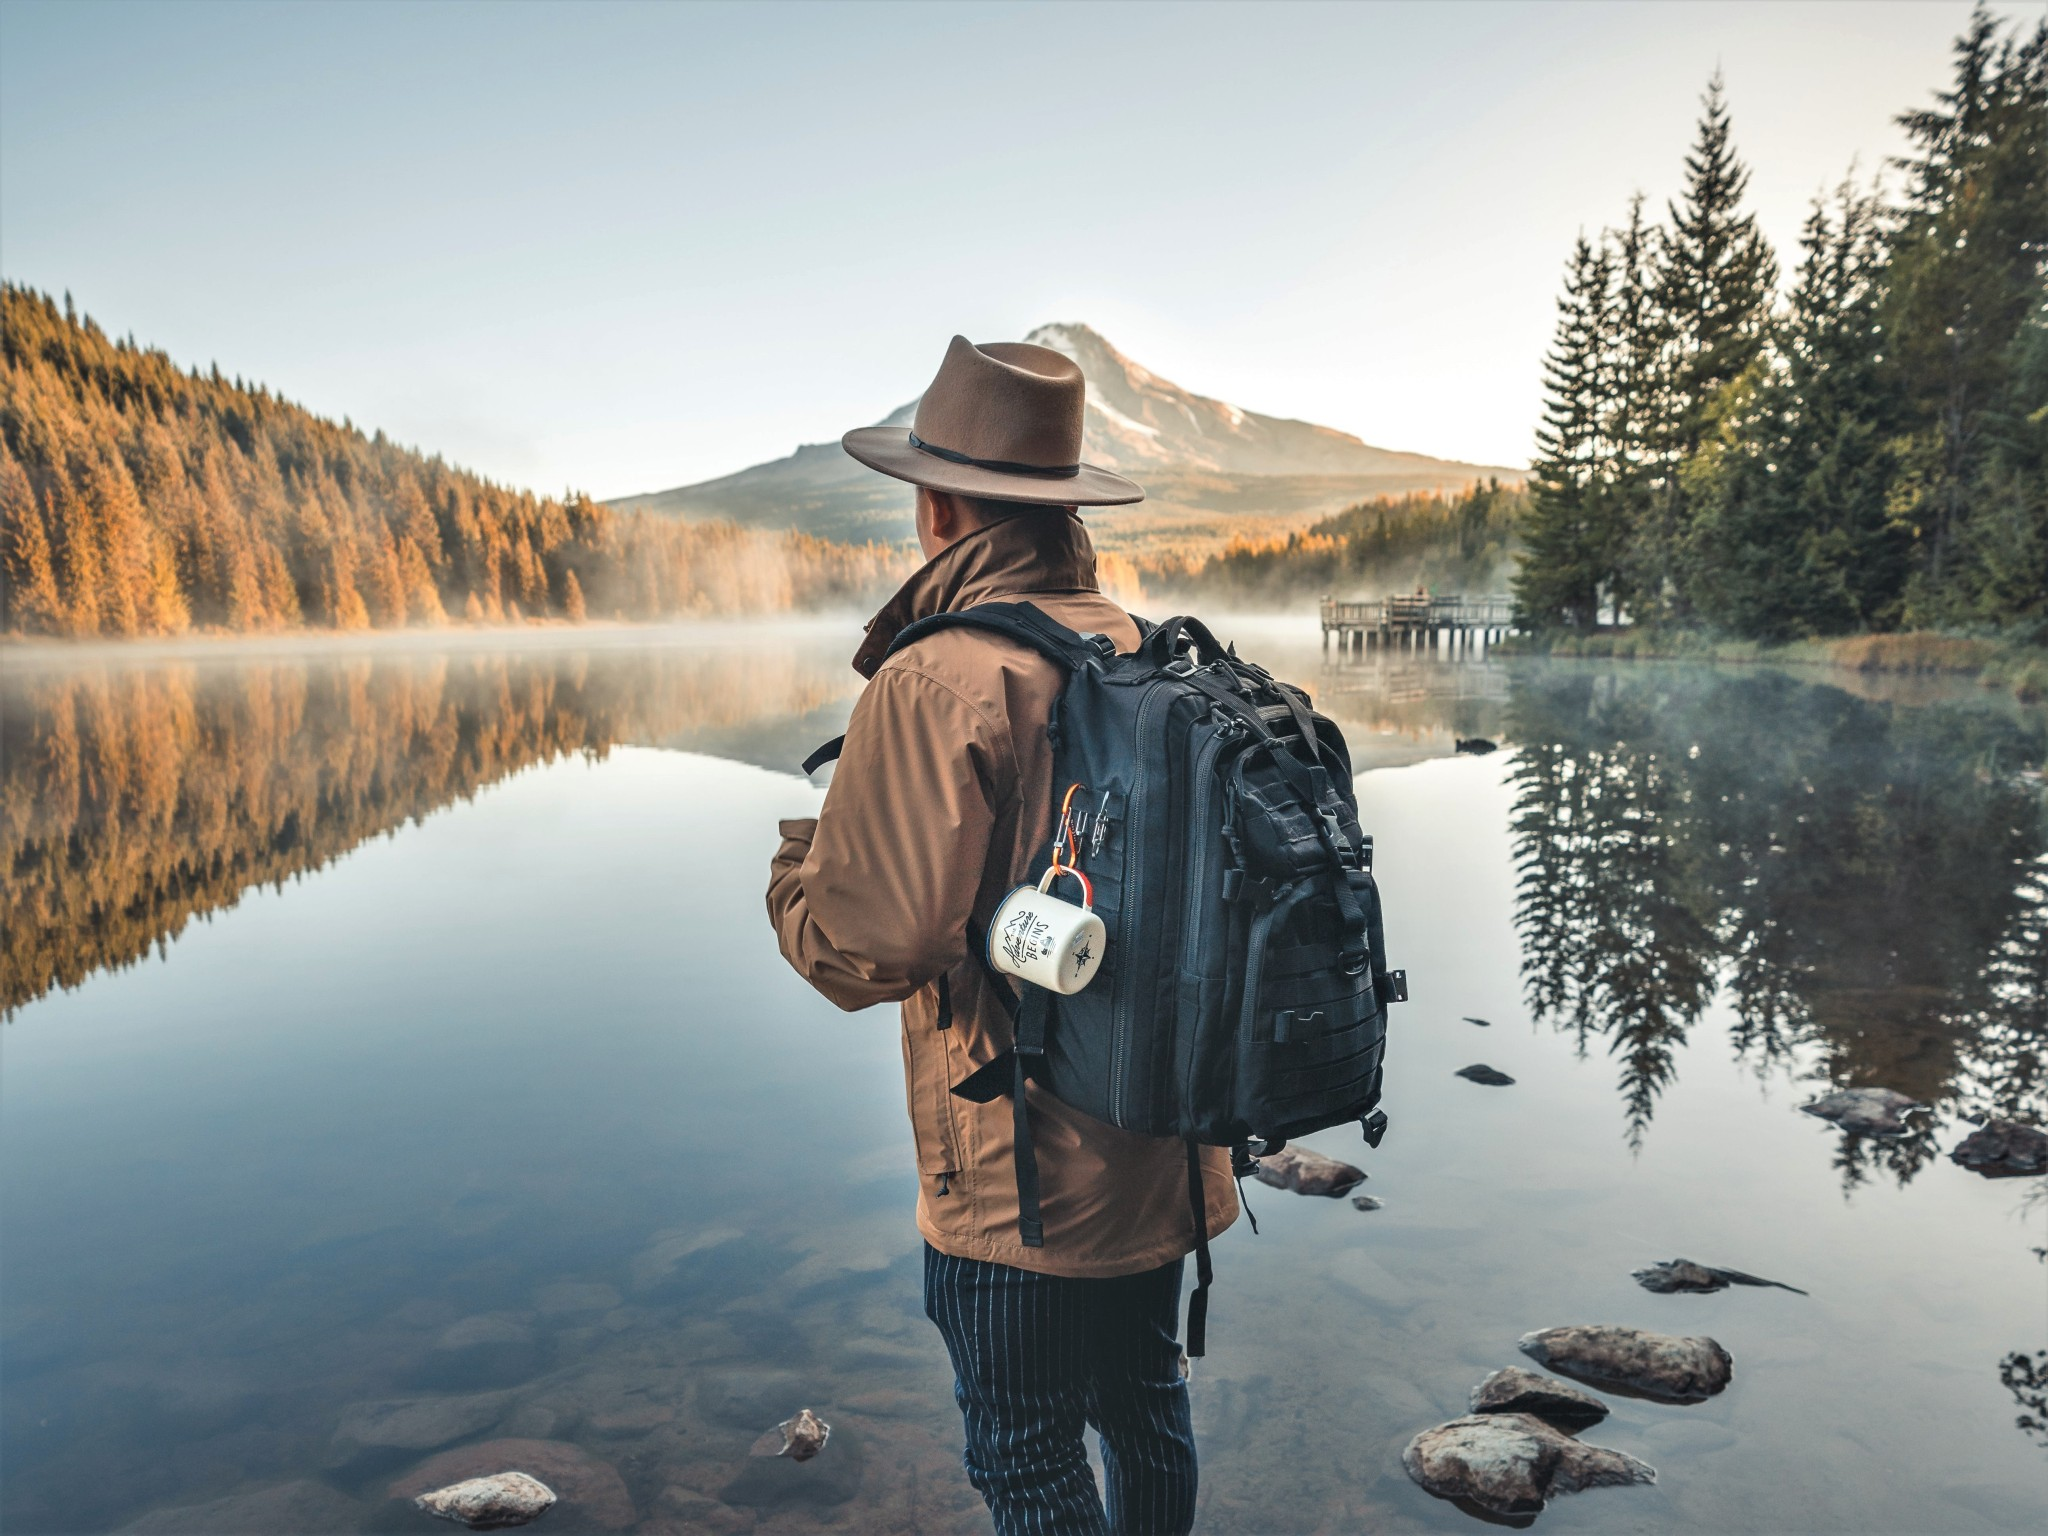 Male explorer and adventurer looking out over lake, forest, and mountain scenery.